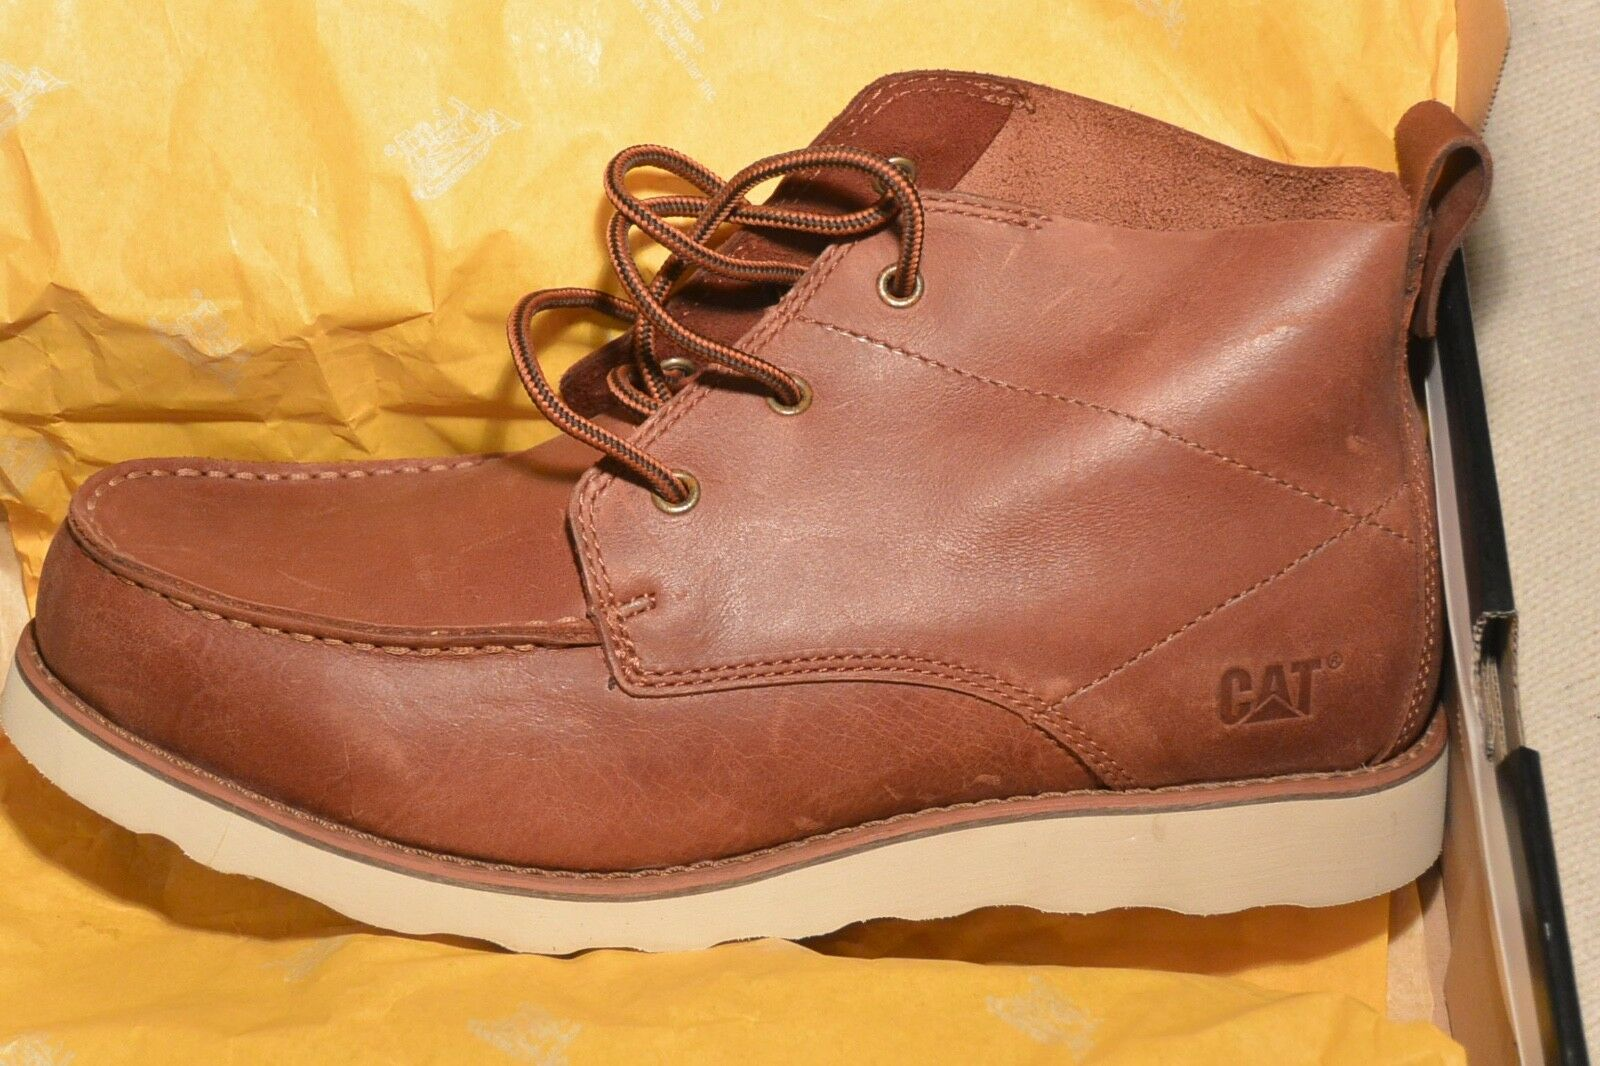 CAT Caterpillar DAVIS 6 BOOT BRICK 44-COGNAC